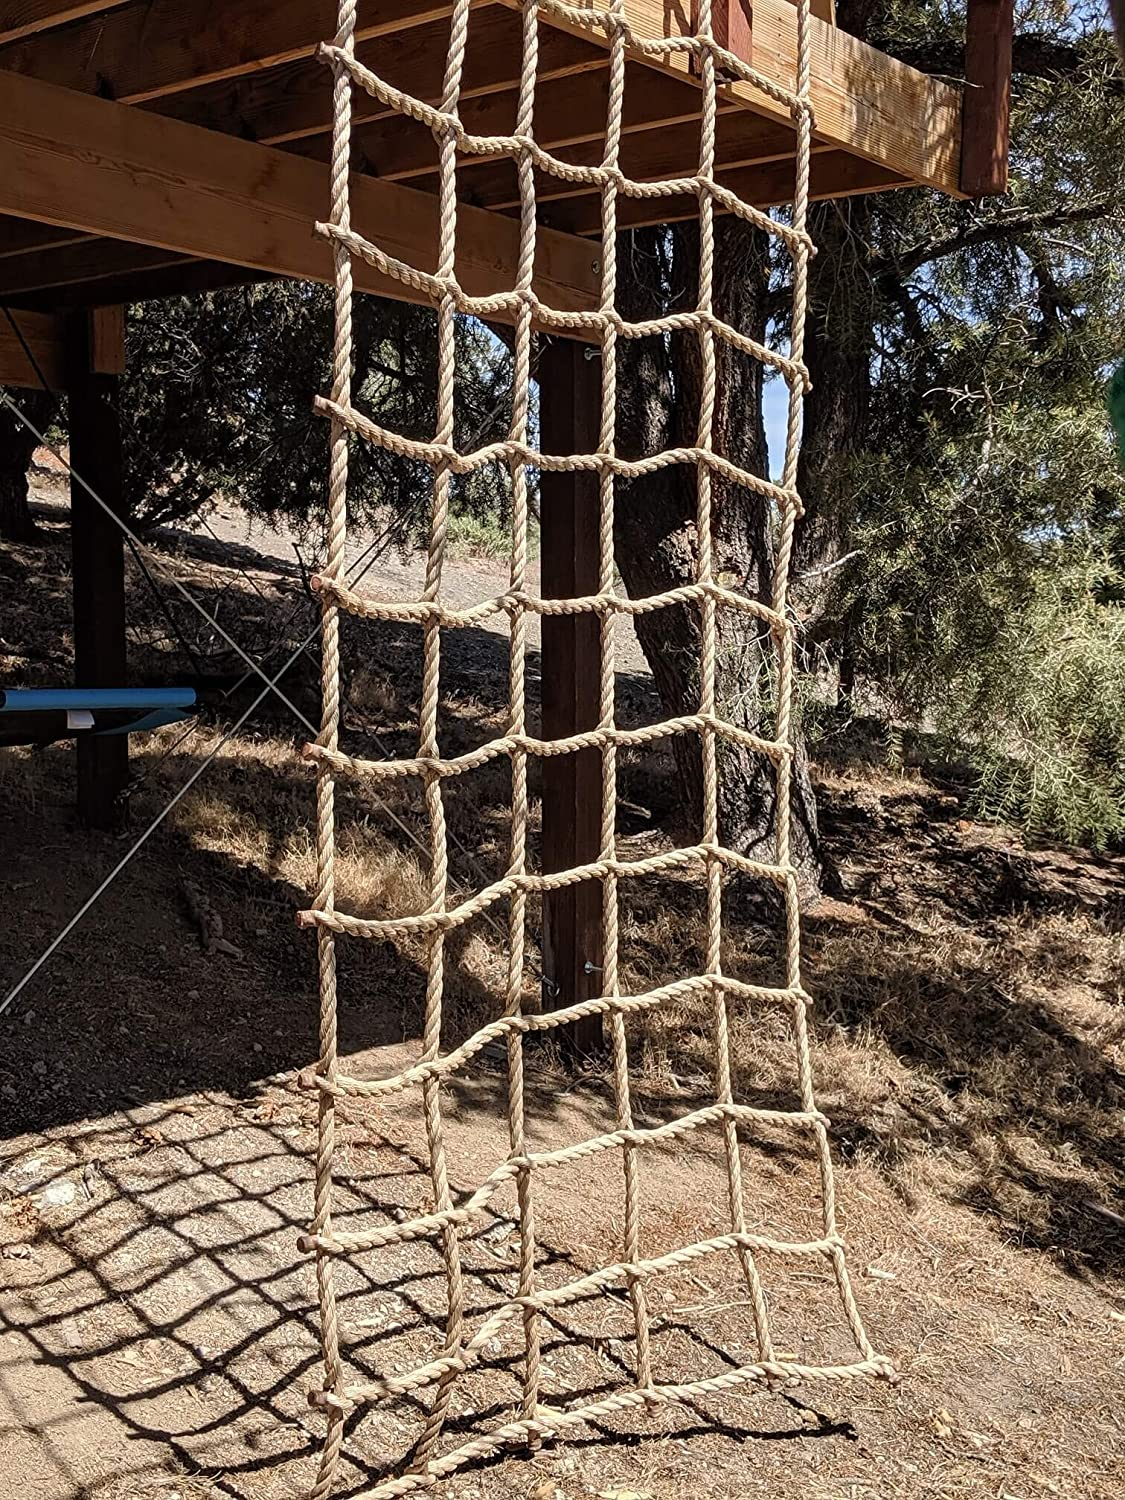 10 Squares Kids Should Be Kids Climbing Net Affordable Quality No Splice 1 Pro Manila Rope